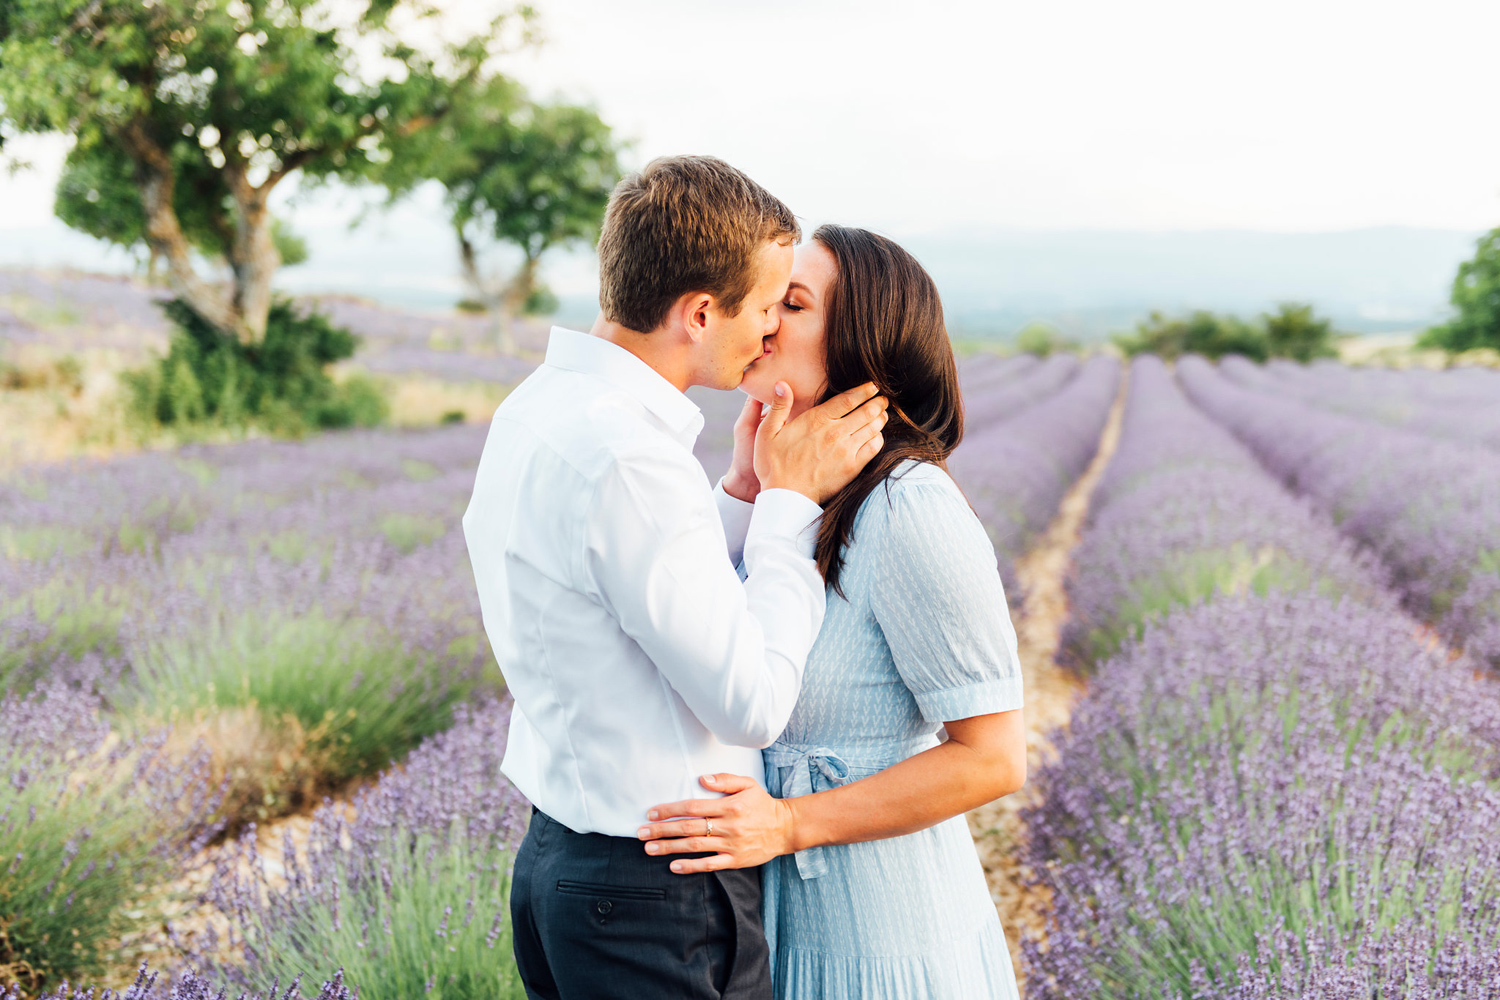 003-katie-mitchell-provence-wedding-portrait-engagement-photographer-south-of-france.jpg